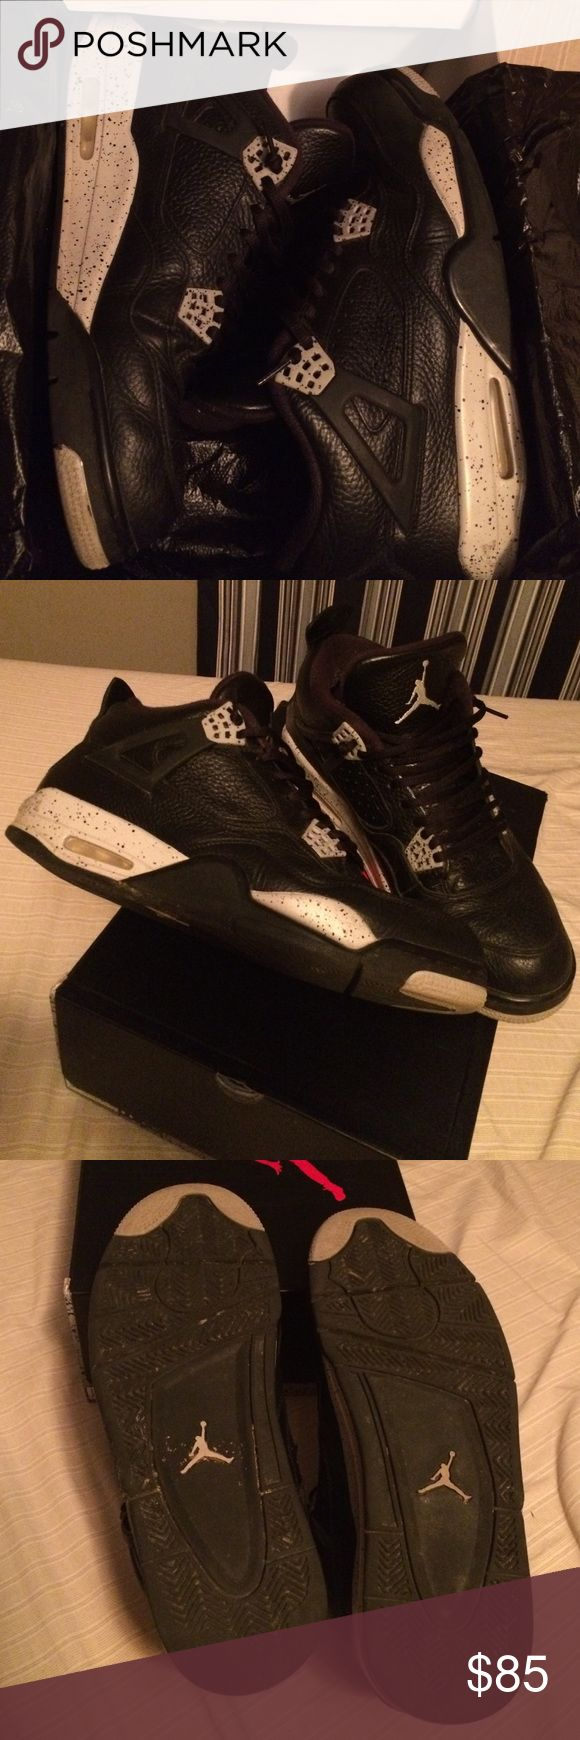 Jordan retro 4 Oreo Size 11.5 from 2014. Pretty good condition! Light creasing on toe box, some star loss on the soles. 8/10. Replacement box. Offer or trades accepted. NO LOWBALLS Jordan Shoes Sneakers